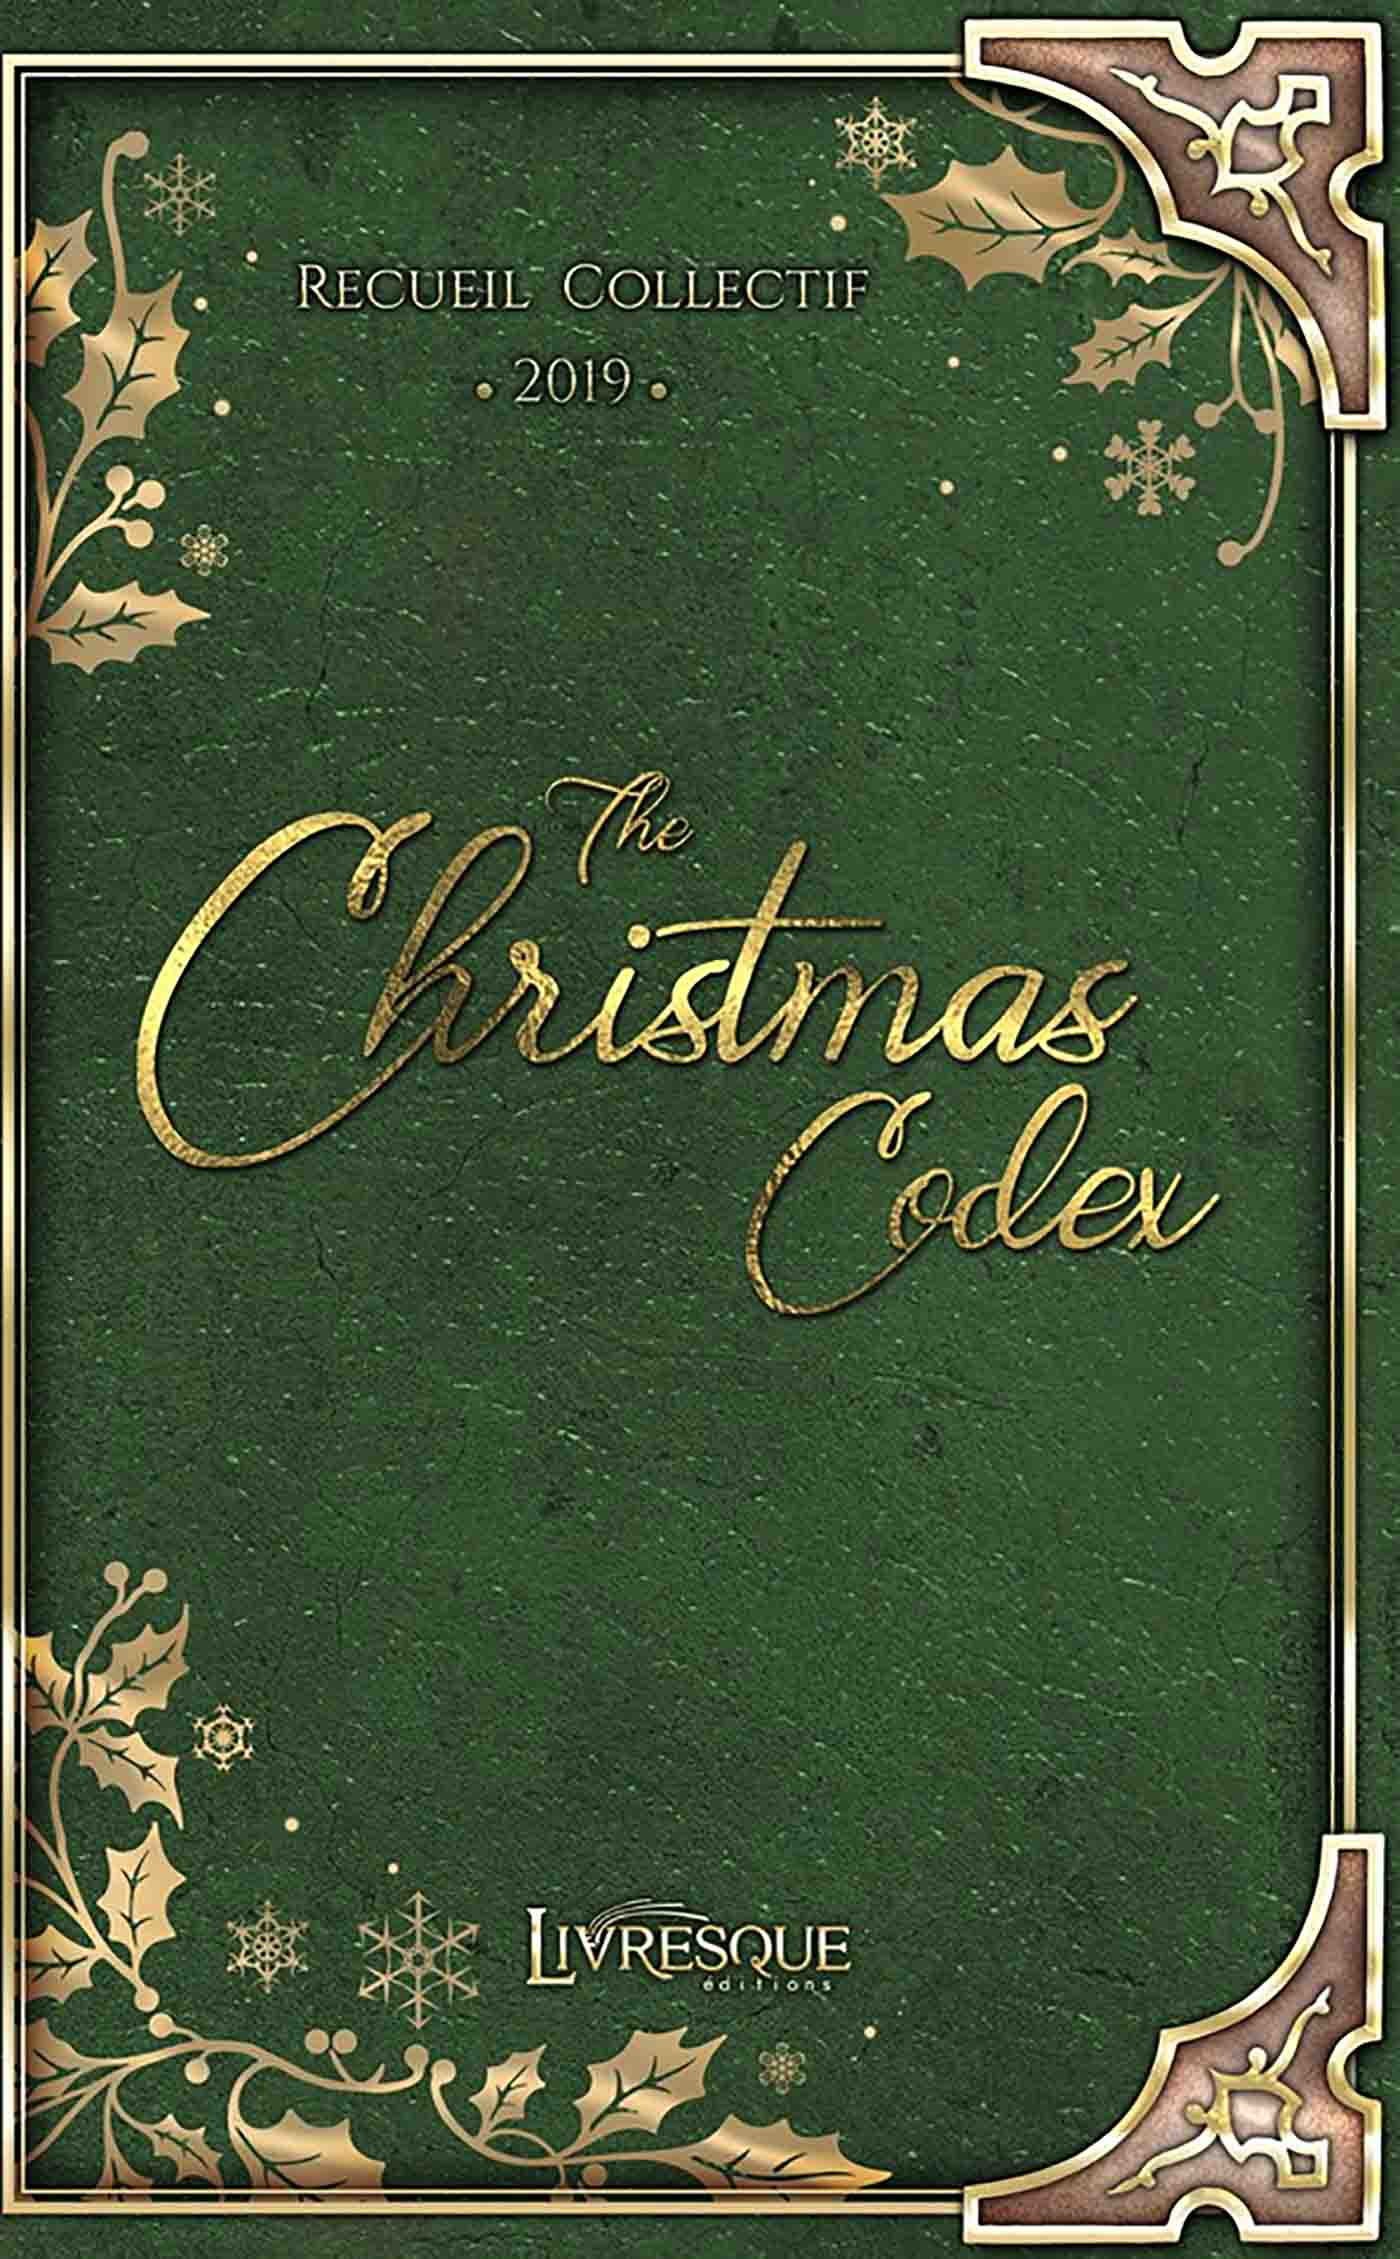 The christmas codex, volume 2 : 2019